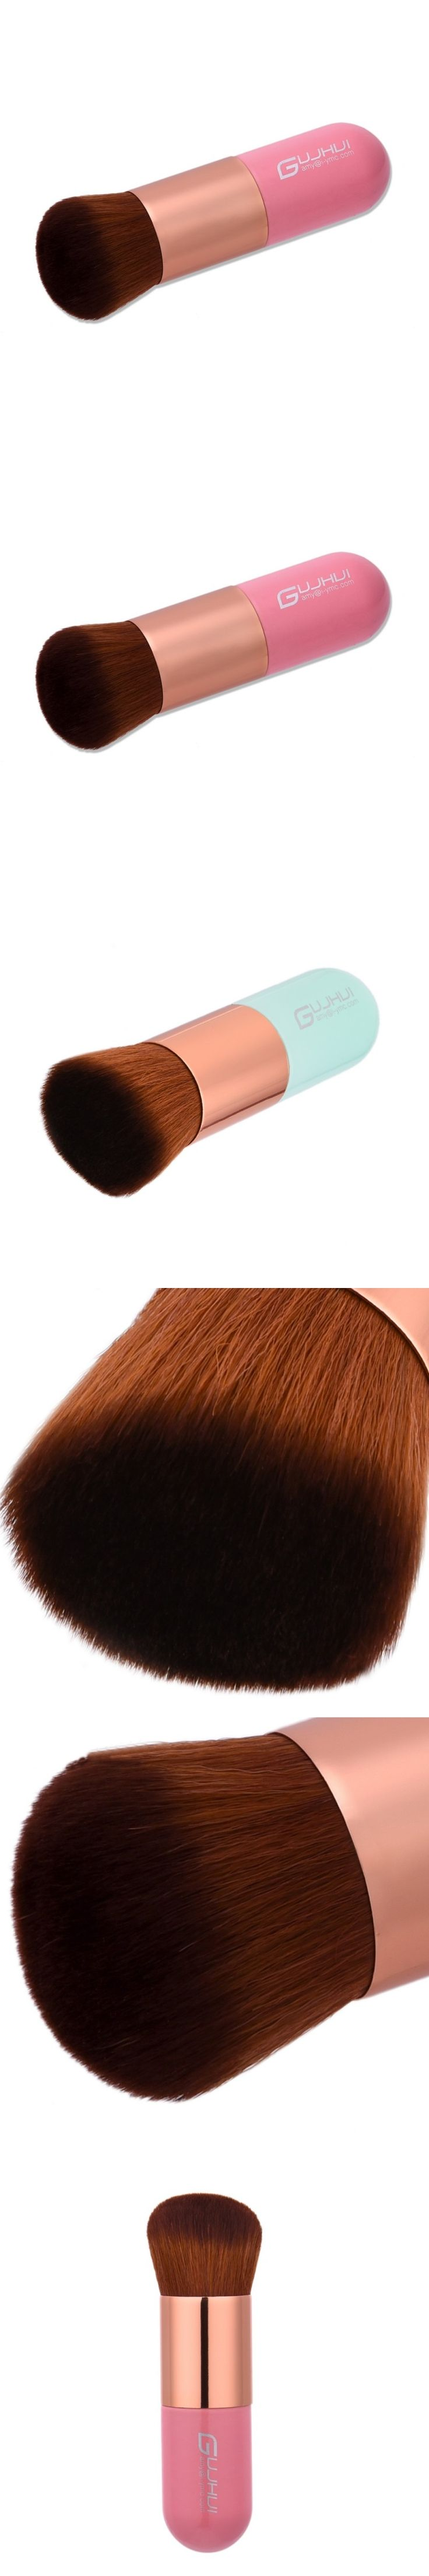 1PCS Large Explosion Brush Foundation Brush Portable BB Cream Makeup Brush